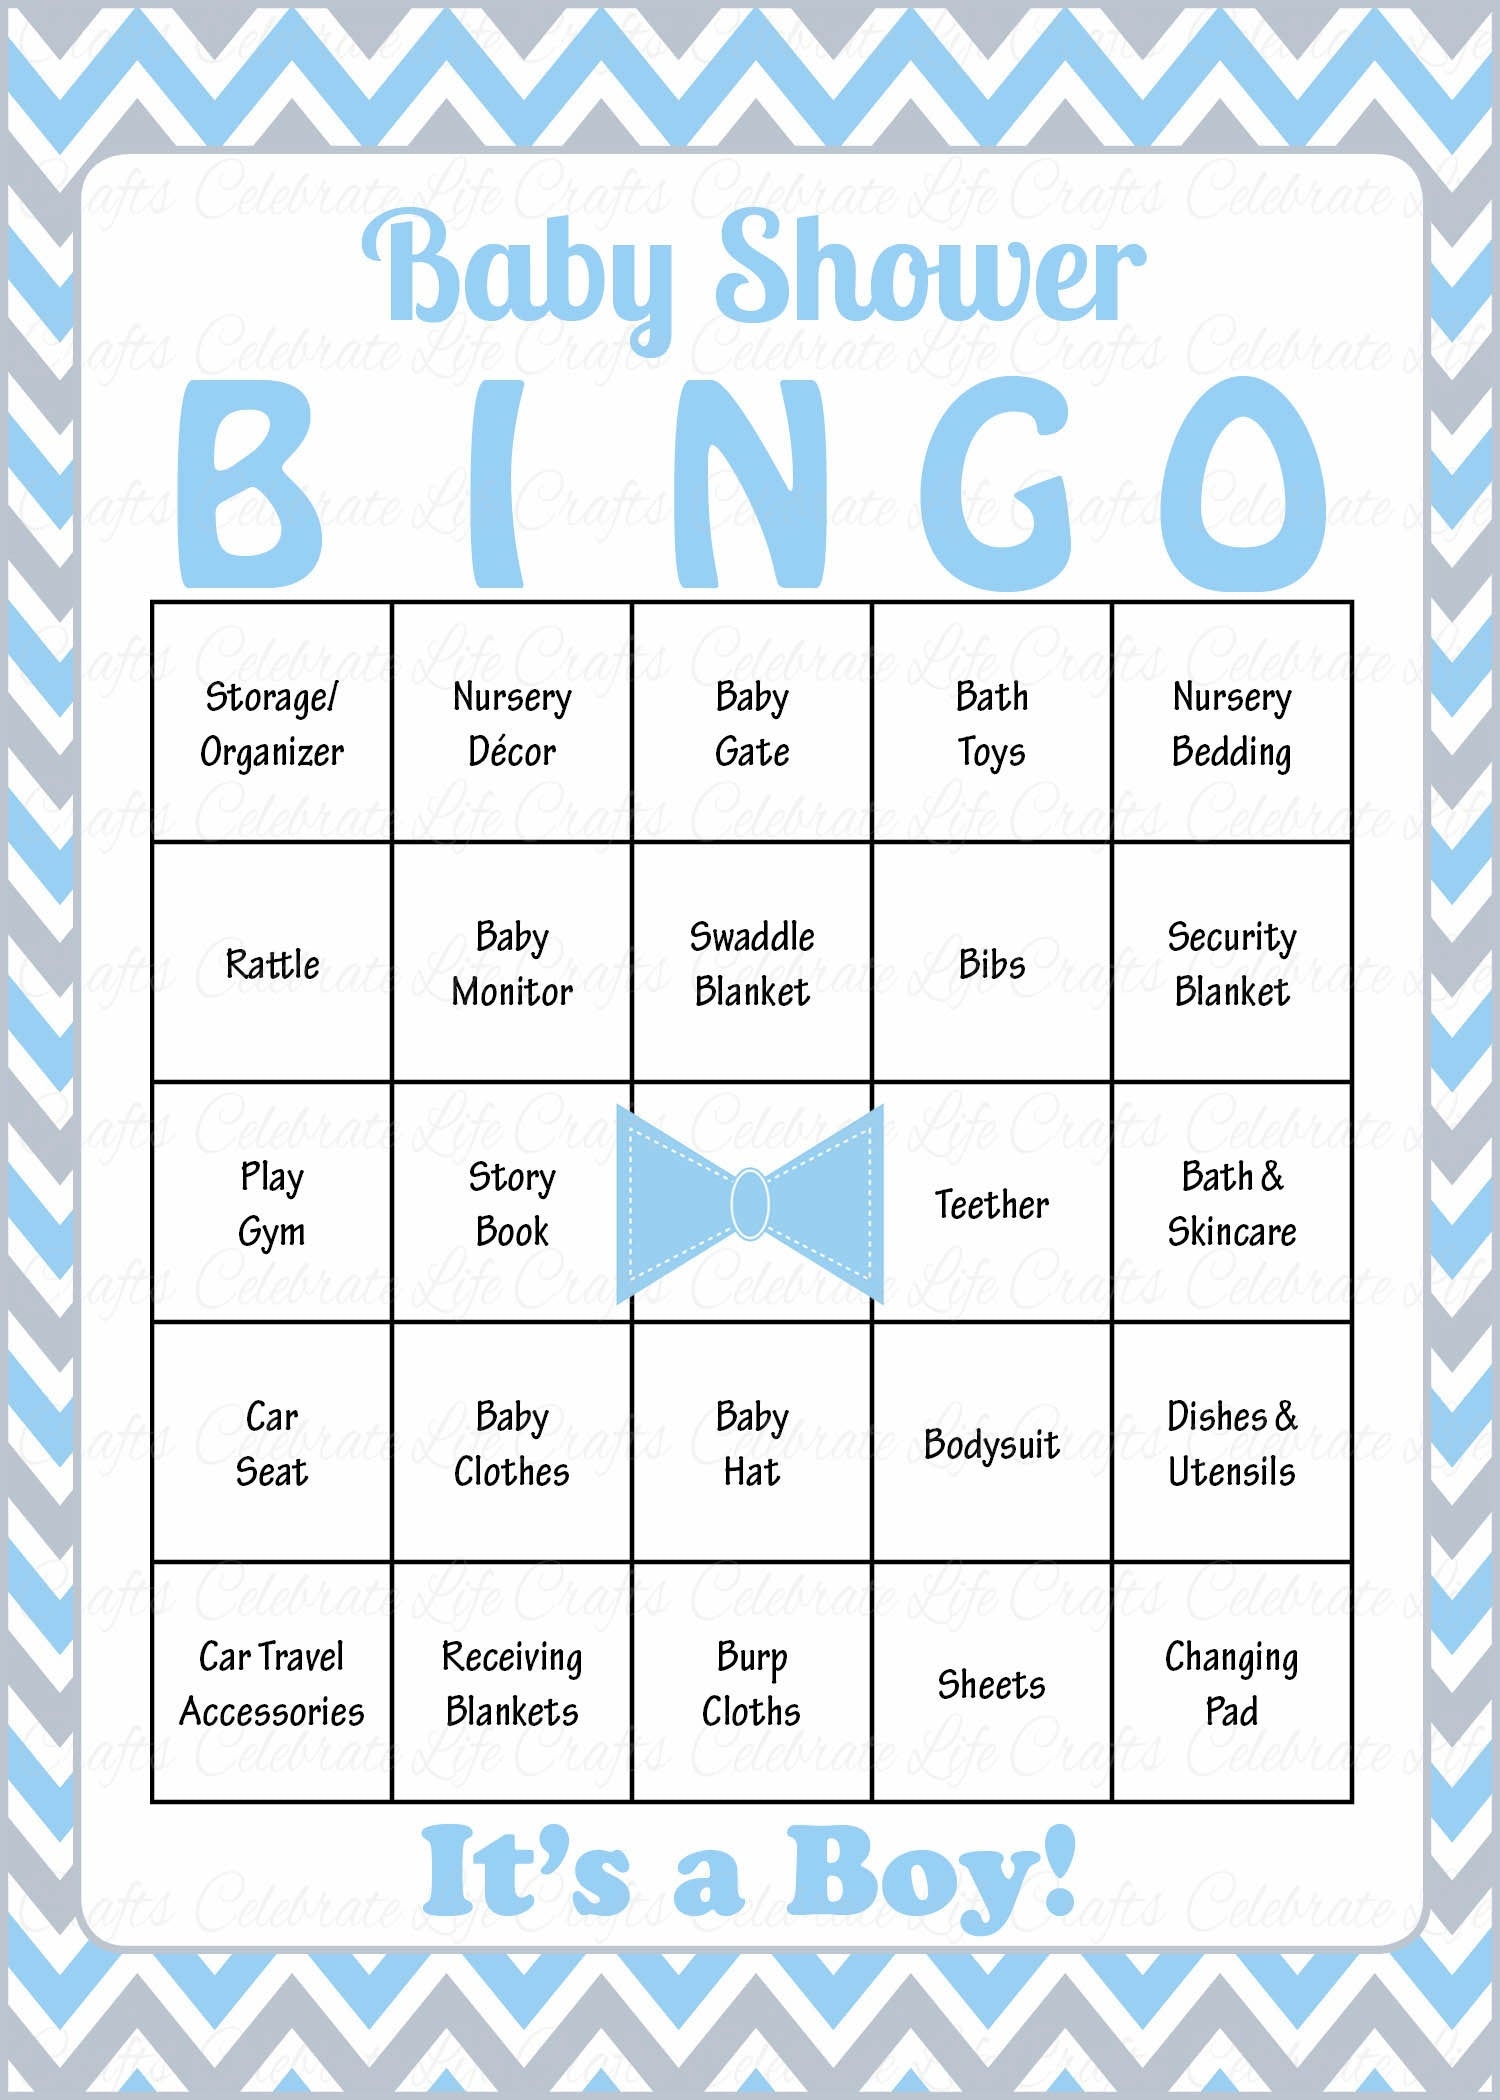 Little man baby shower game download for boy baby bingo little man baby bingo cards printable download prefilled baby shower game for boy blue gray bowtie b1008 solutioingenieria Gallery